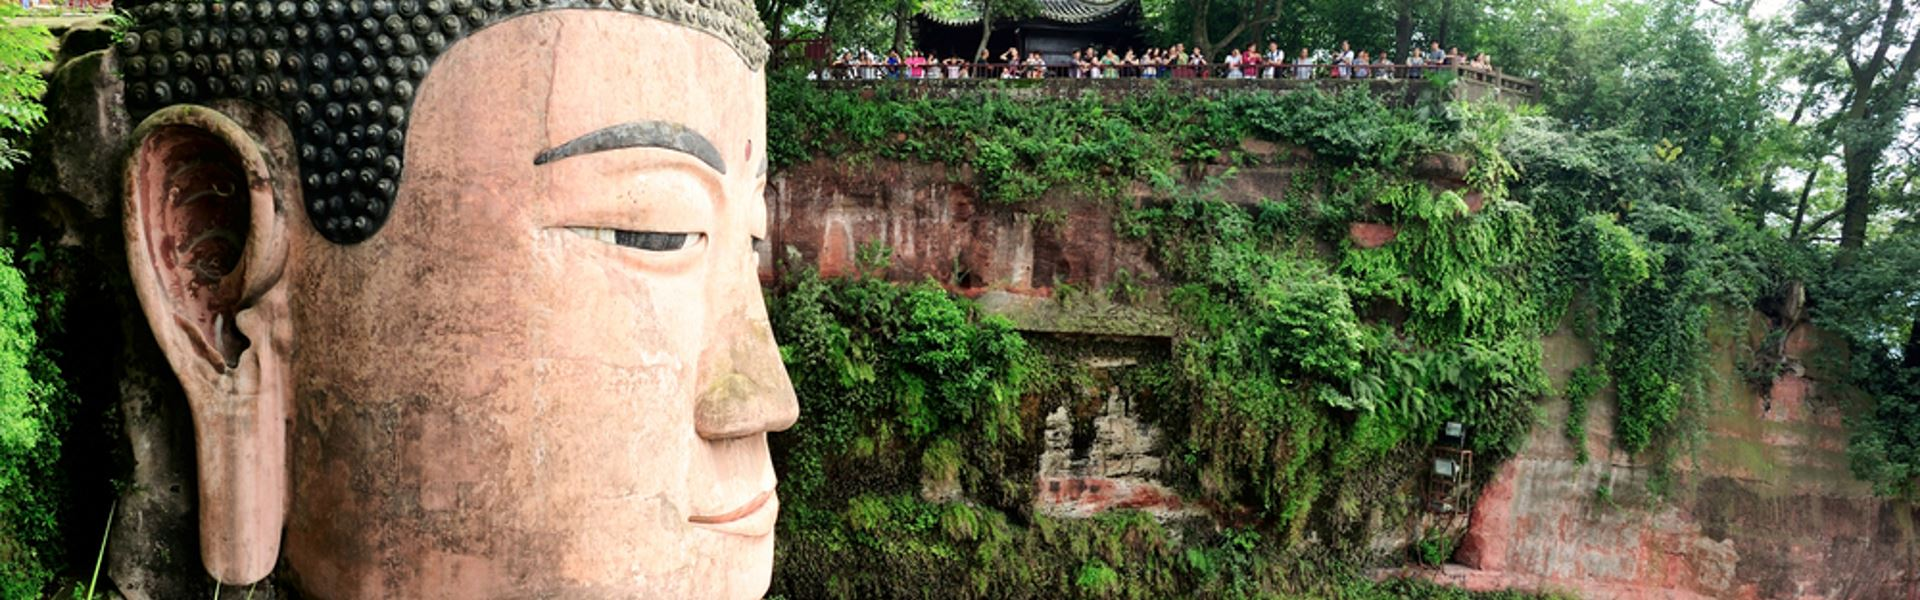 Giant Buddha statue in Leshan, China